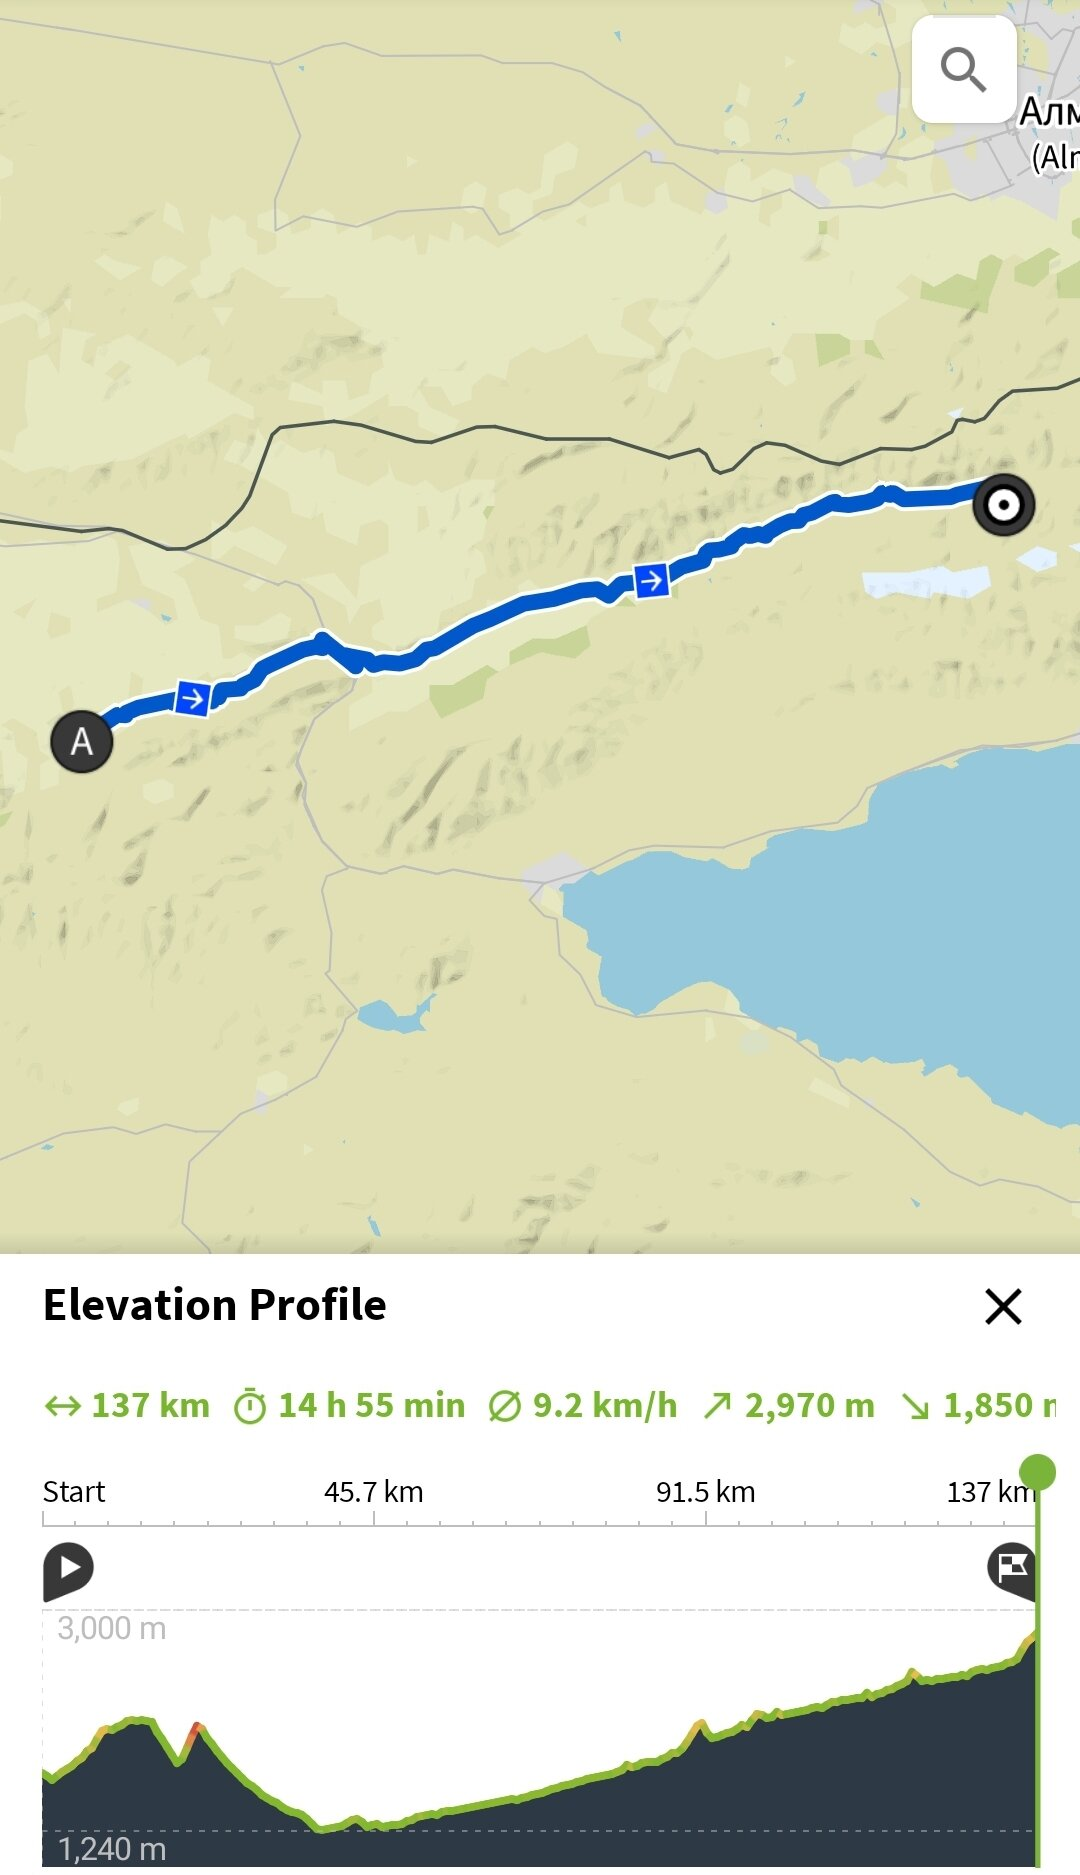 Day 14 // Peanut Butter Hills to the Foot of Kok-Airyk - Time: 14h 55min from 4:00 - 20:30Distance: 137kmVertical meters: 2970mHighest point: 2820mWeather: Hot and sunnySleep: Tent